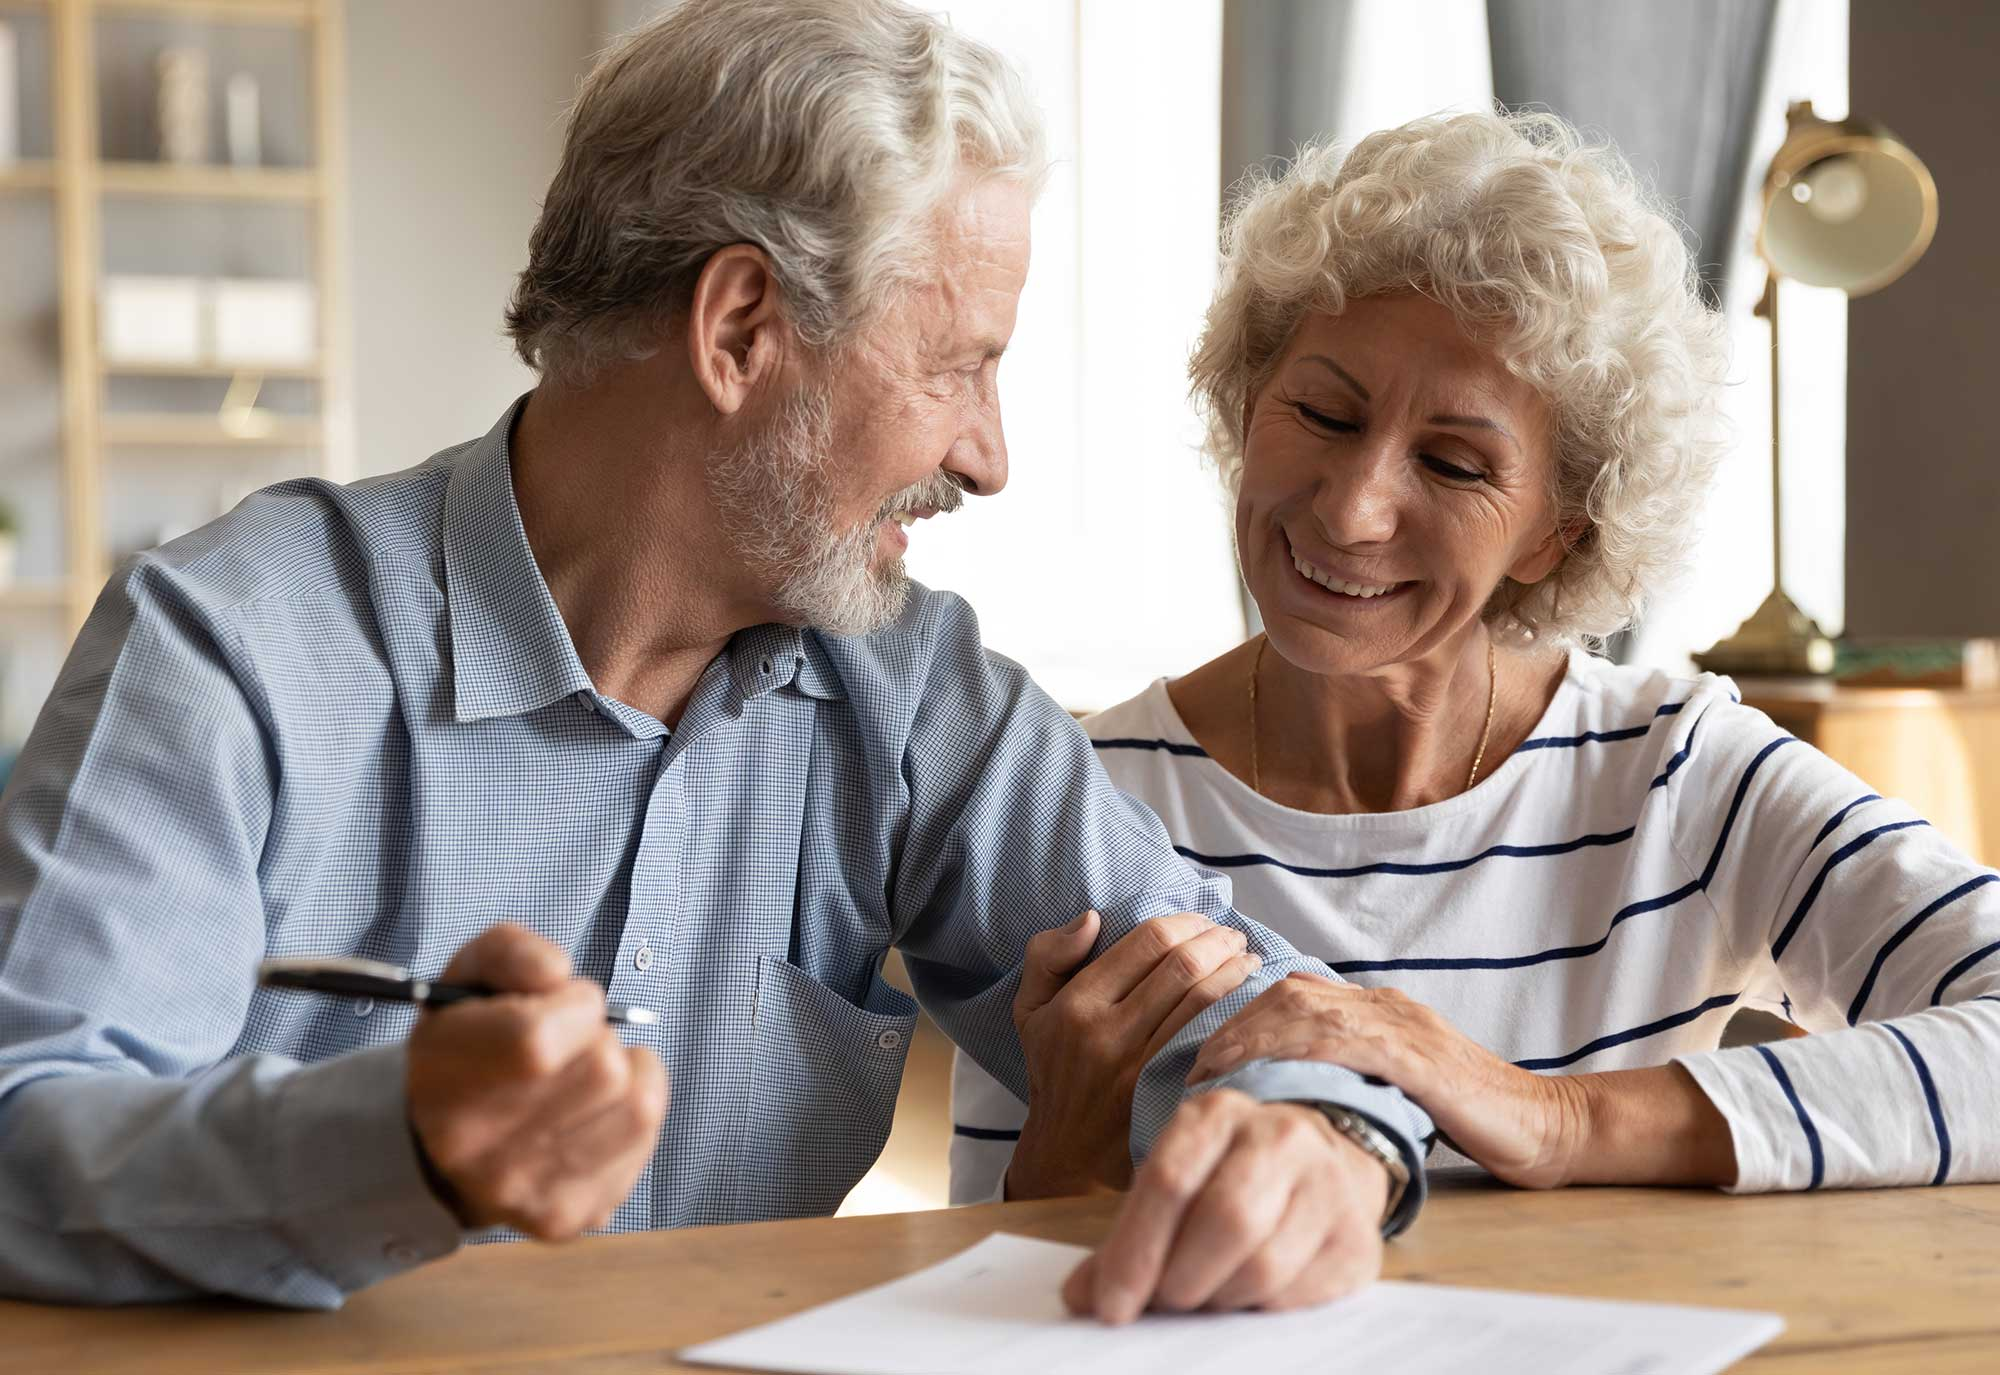 older couple sign forms at dining room table